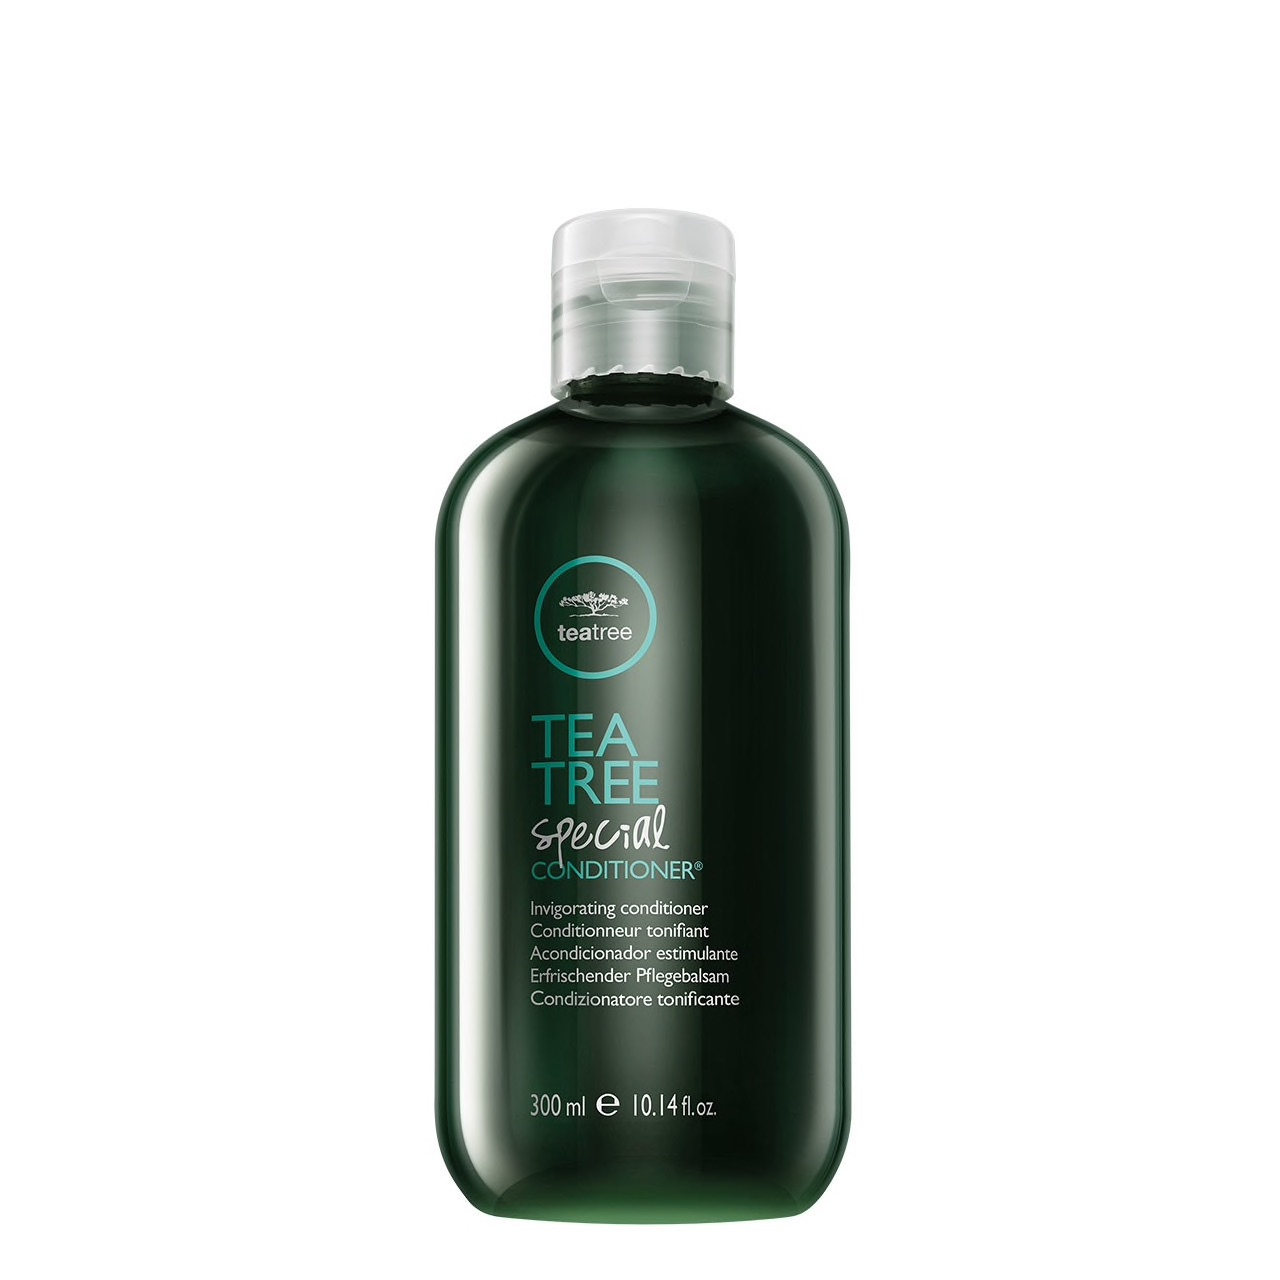 Tea Tree Special Conditioner BY Paul Mitchell